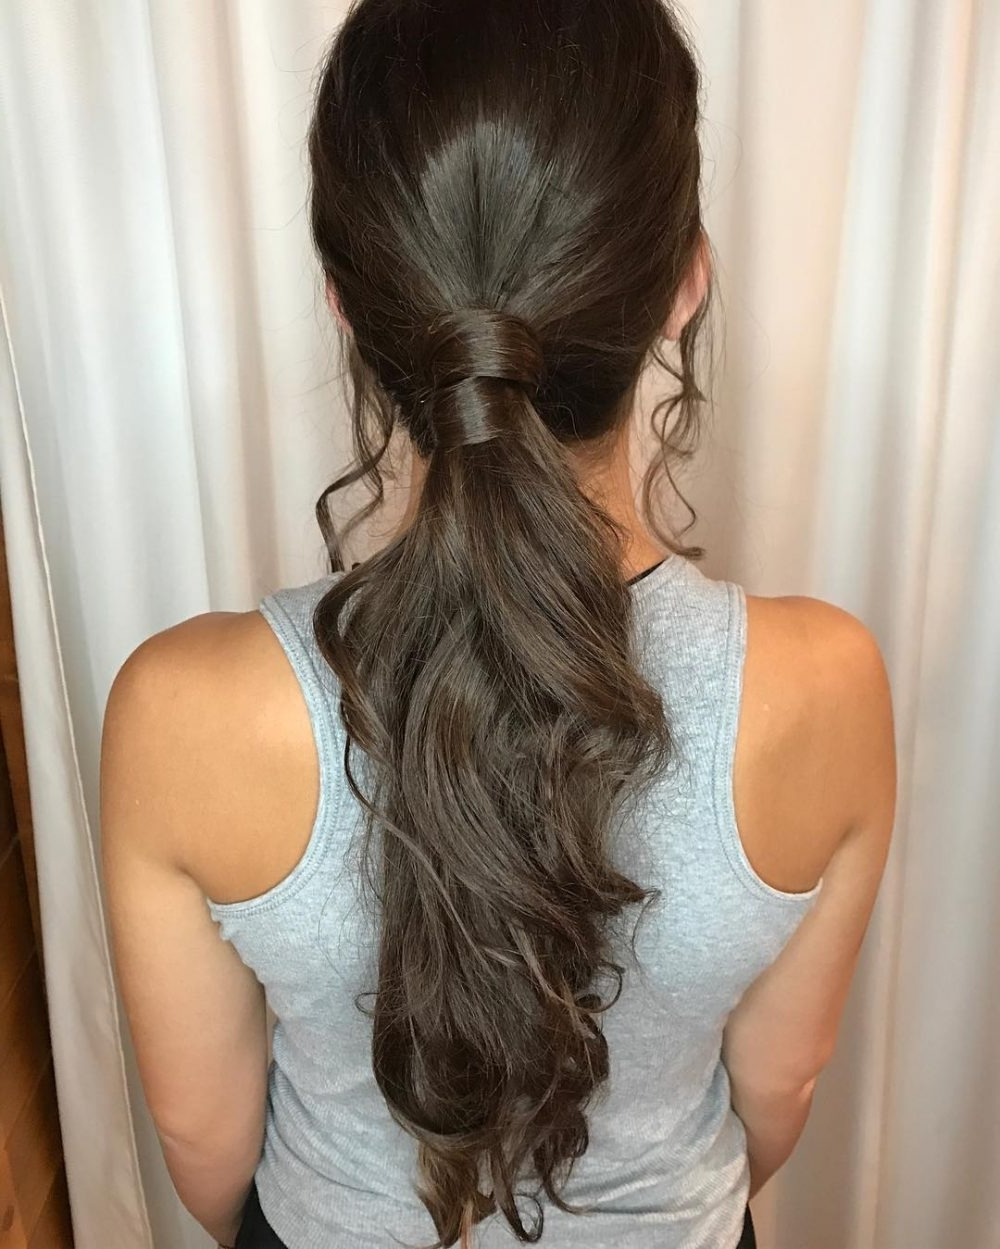 38 Ridiculously Cute Hairstyles For Long Hair (Popular In 2018) In Most Up To Date Charmingly Soft Ponytail Hairstyles (View 5 of 20)